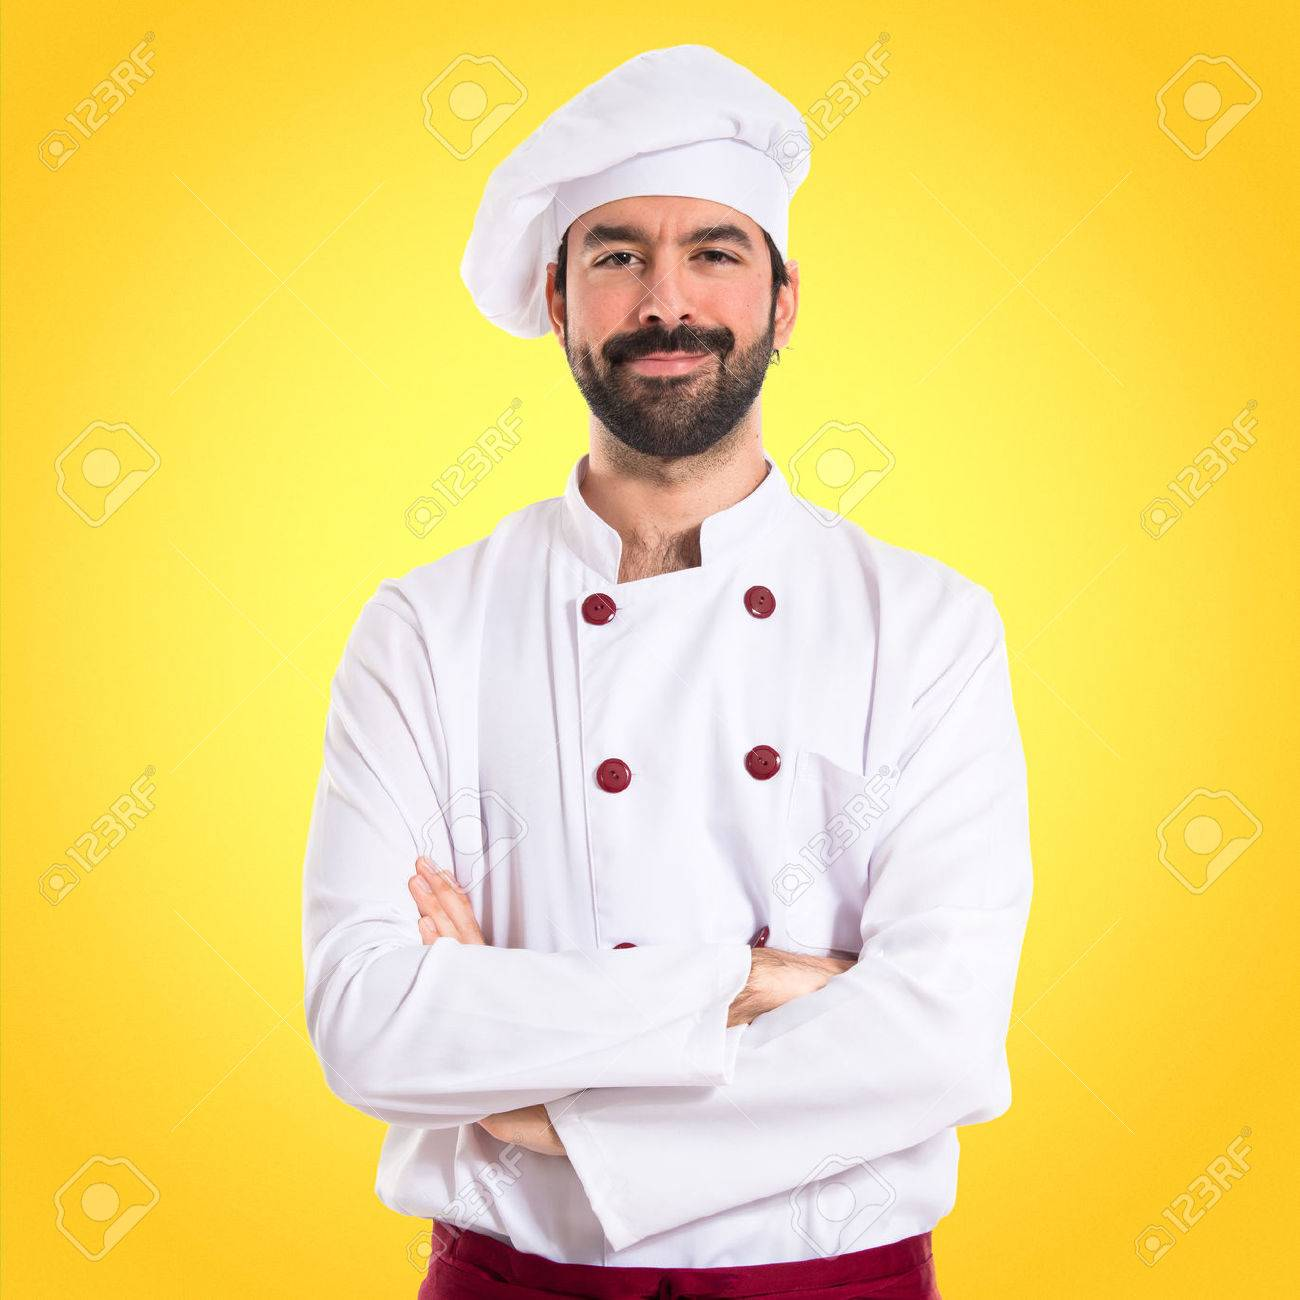 Chef with his arms crossed over white background - 40989323